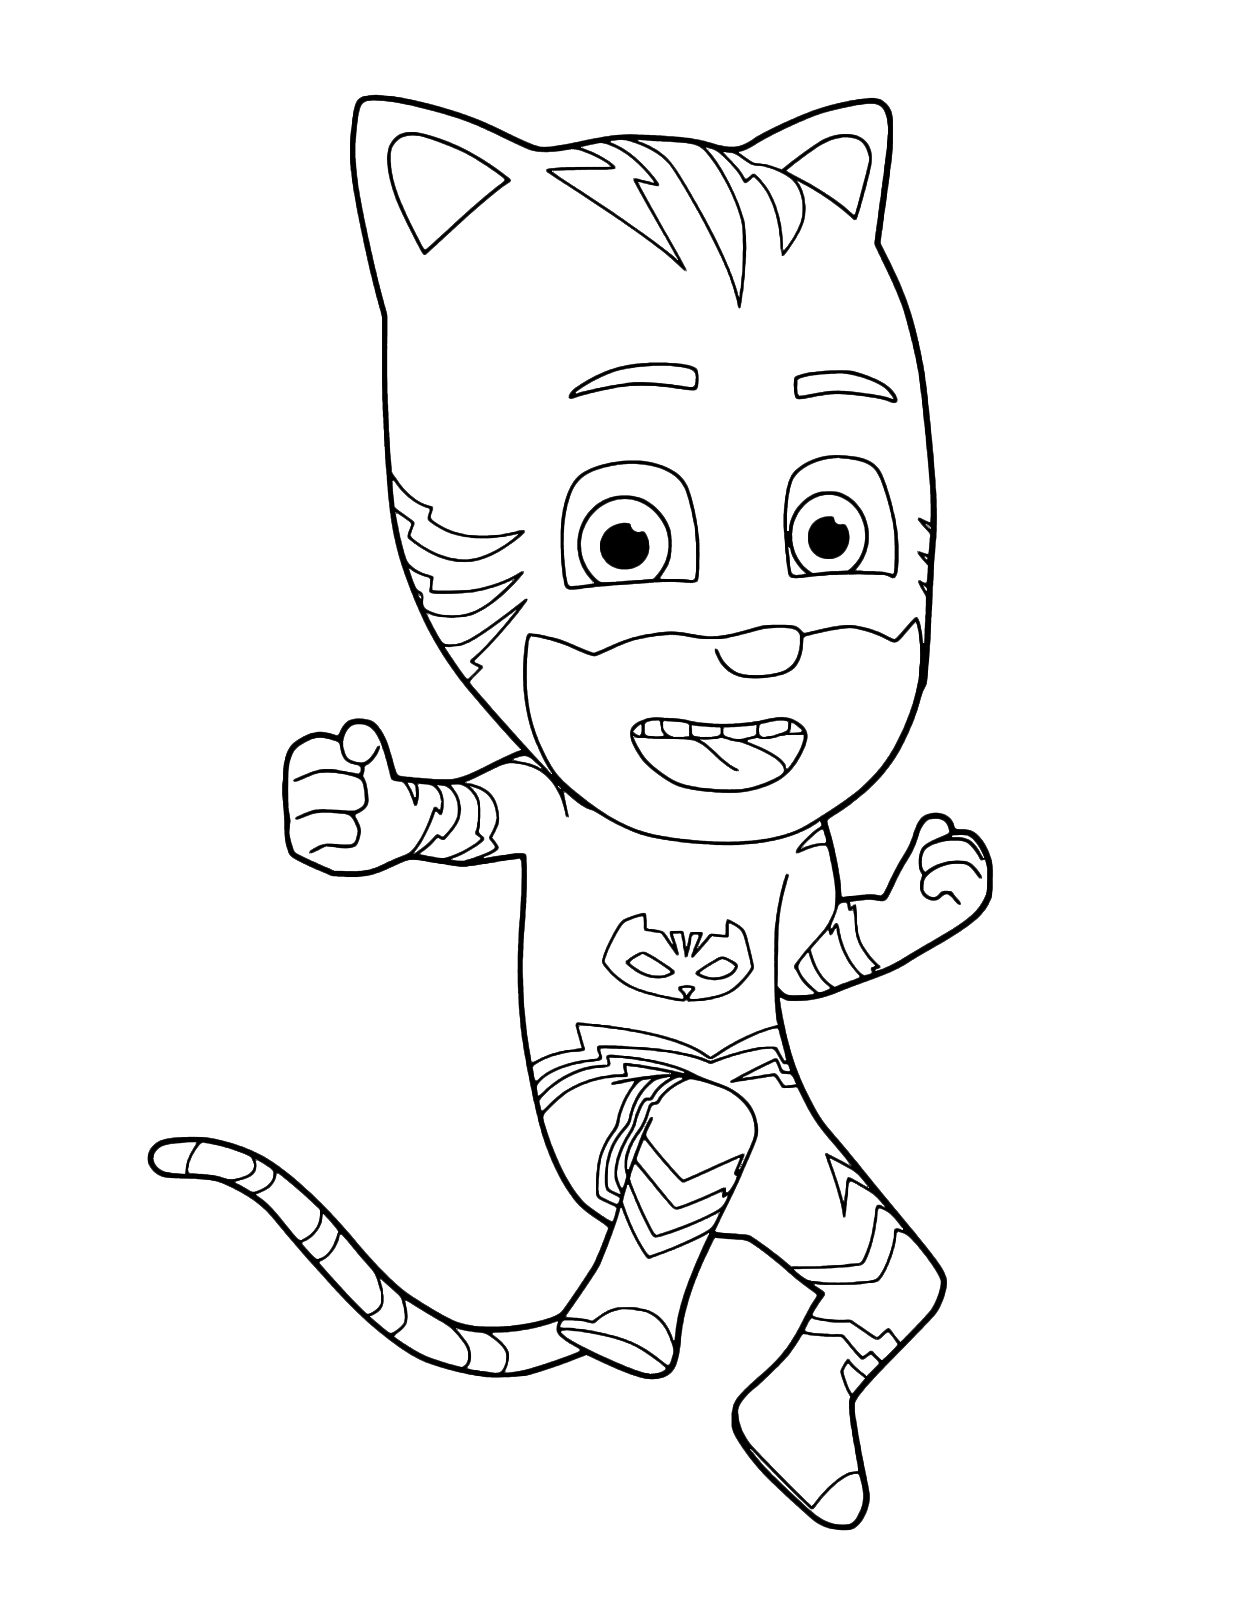 How To Draw Pj Masks Catboy